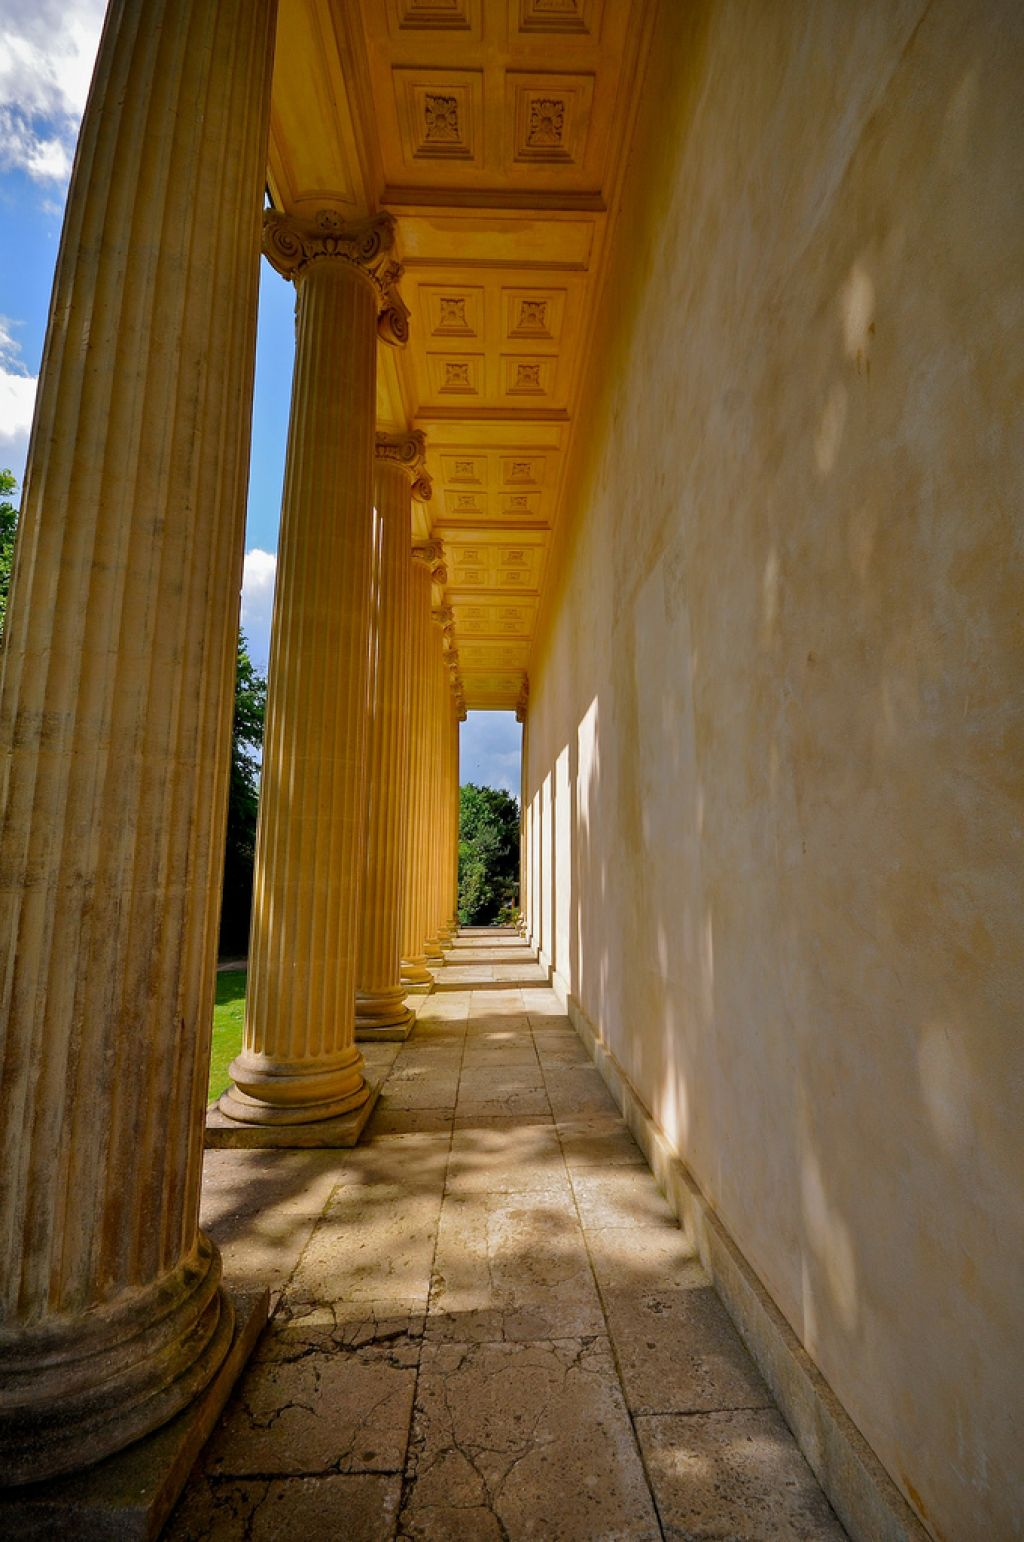 gardens stowe6 The Temple of Concord and Victory at Stowe Park